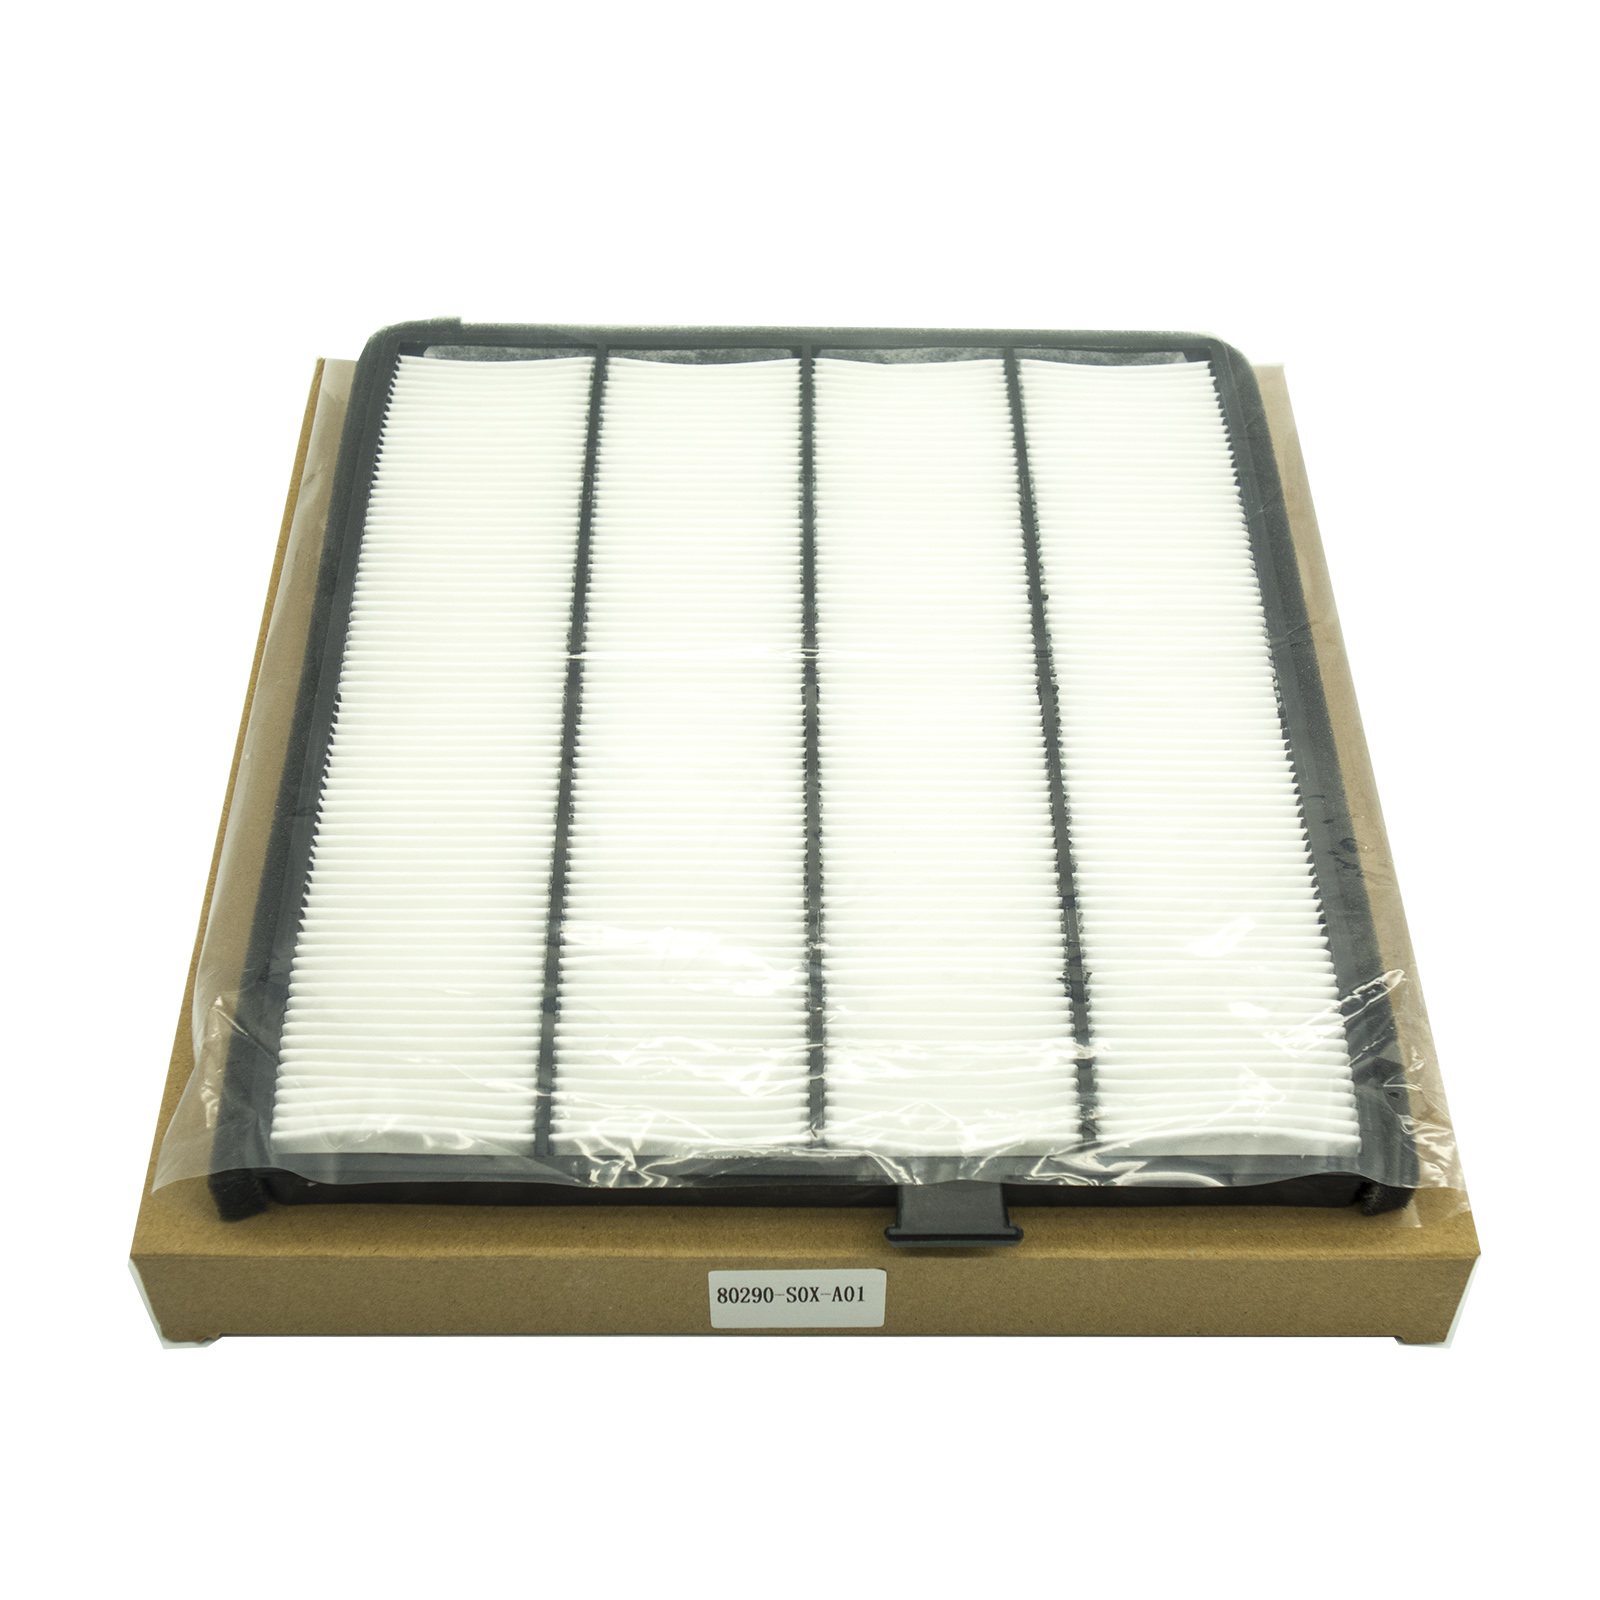 C45459 AC CABIN AIR FILTER Fits For Odyssey 1999-04